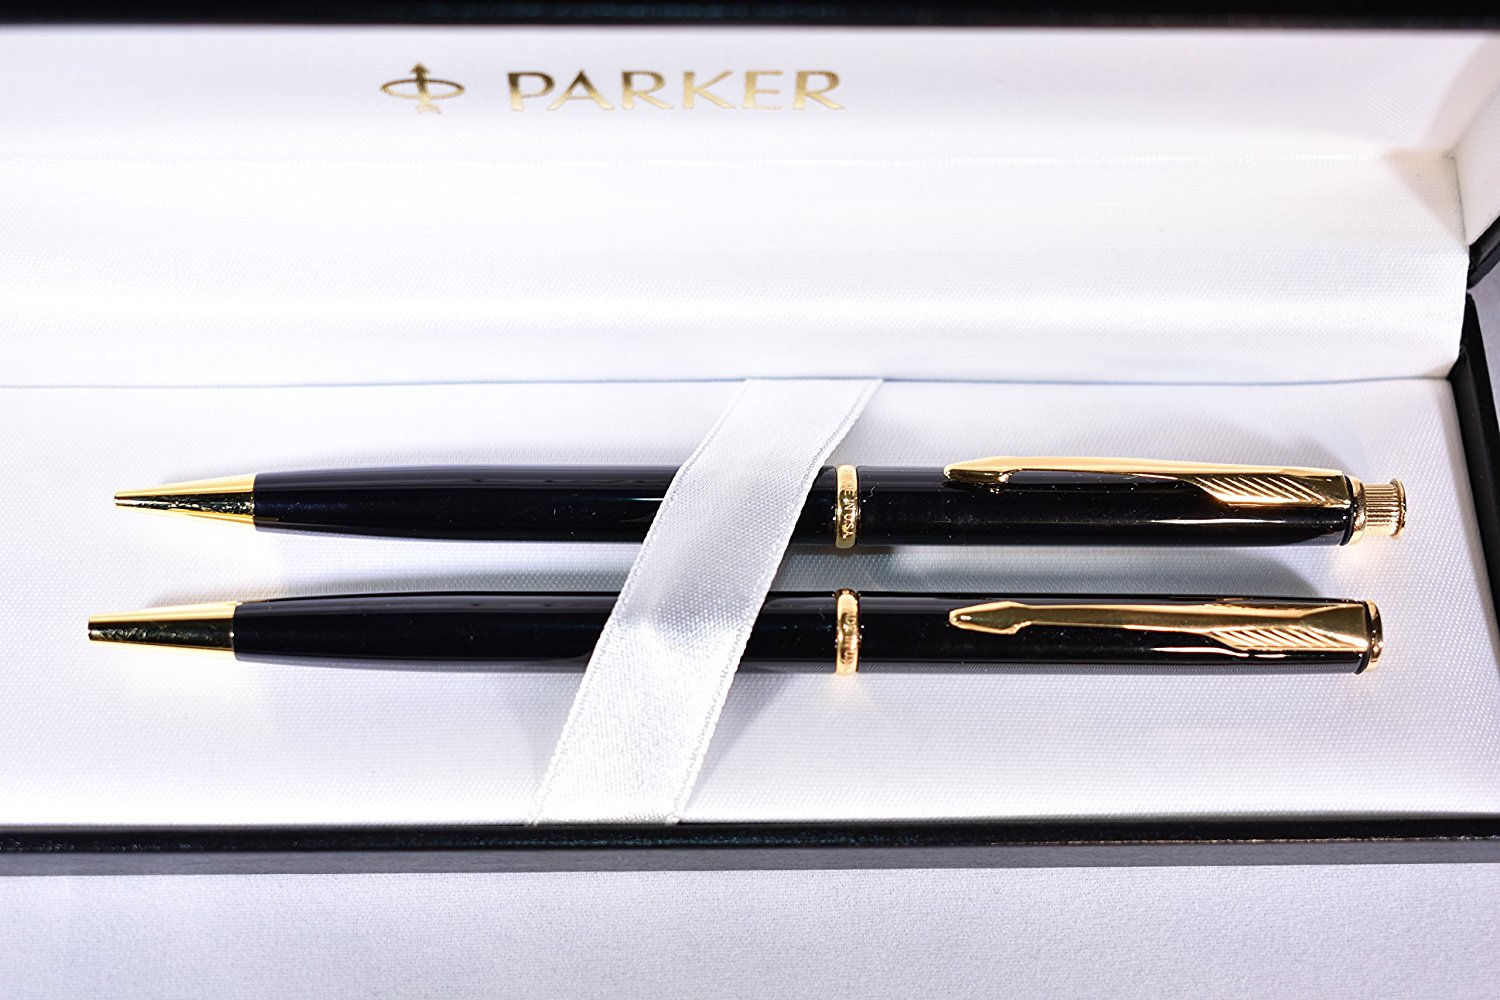 Parker Insignia Lacque Black Ball Pen and Pencil Set